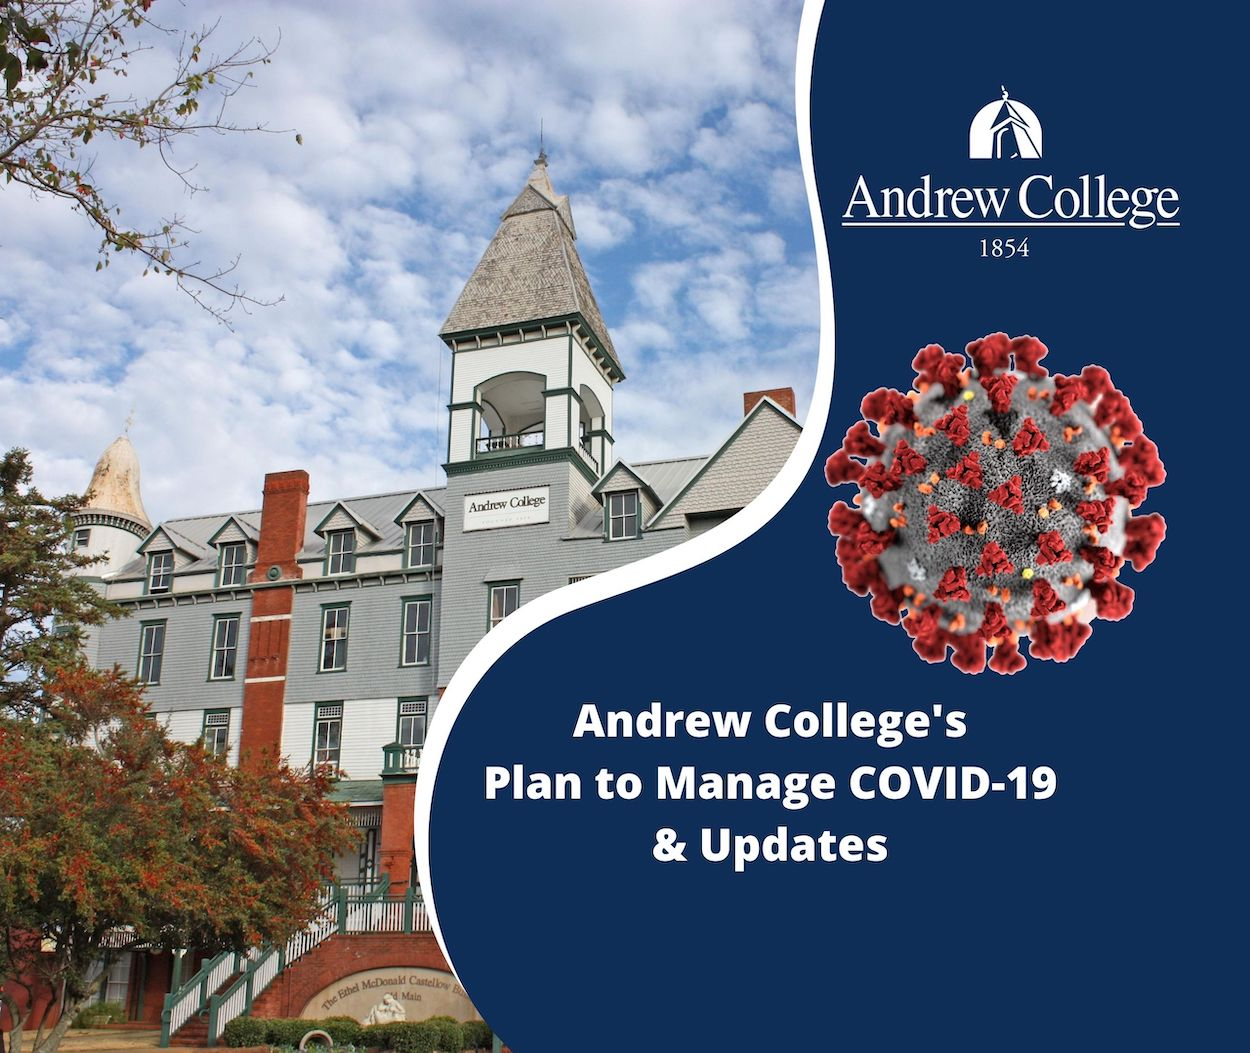 Andrew College COVID-19 Update